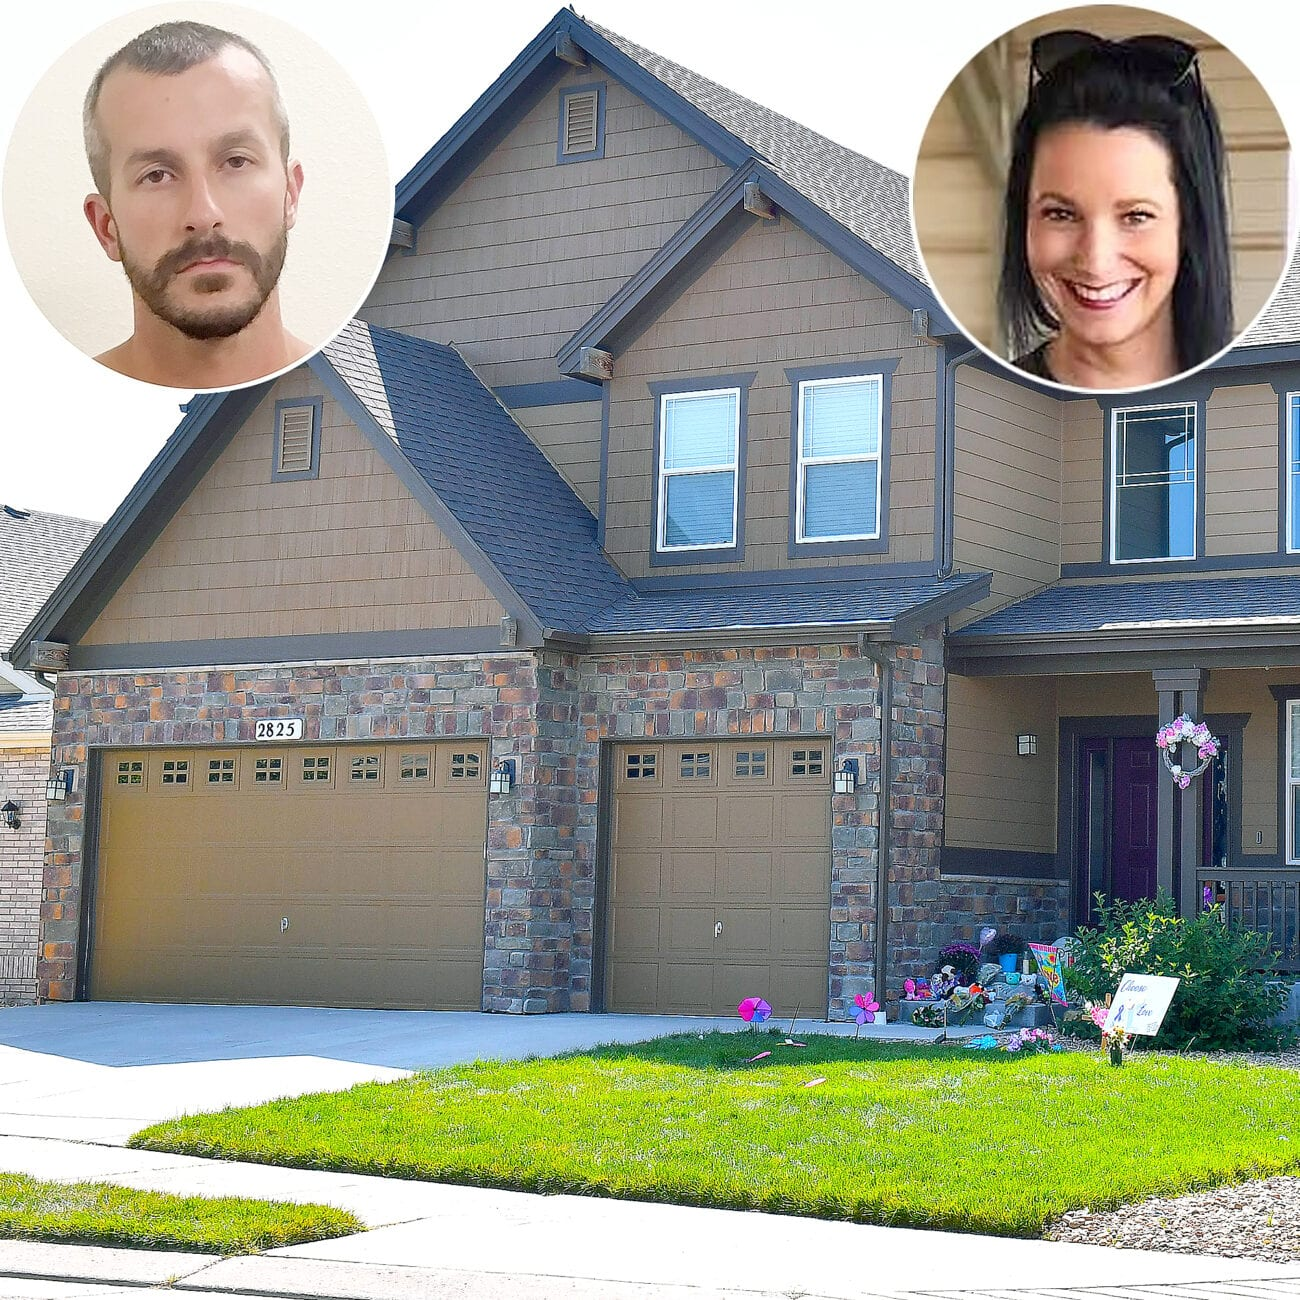 The bankruptcy attorney trying to sell the house Chris Watts committed his murders in has finally given up. Read more into why Chris Watts's home is empty.